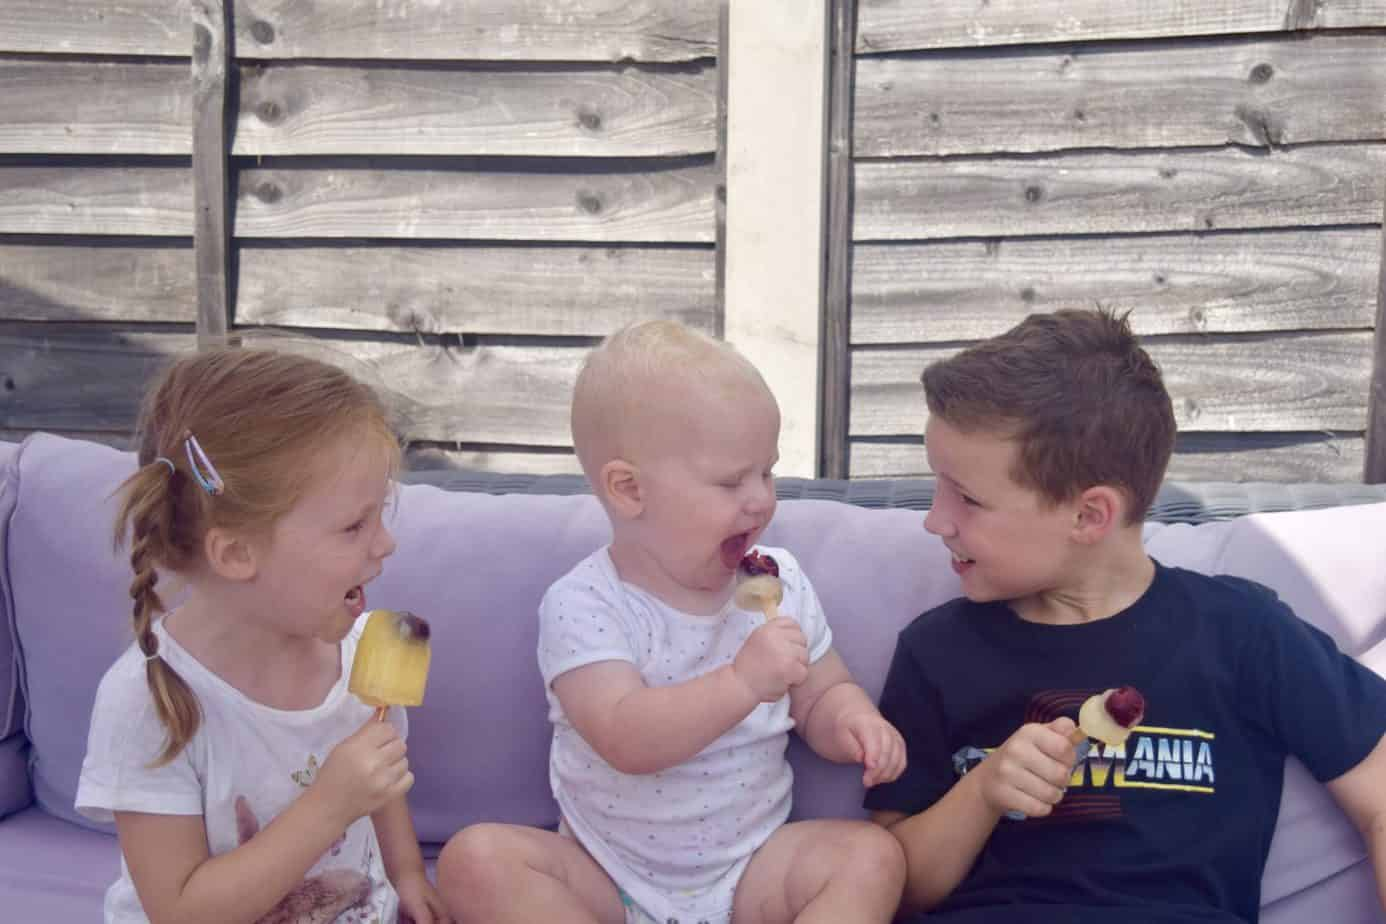 My three beautiful children B, W and K enjoying their #LoveFreshCherries ice lollies